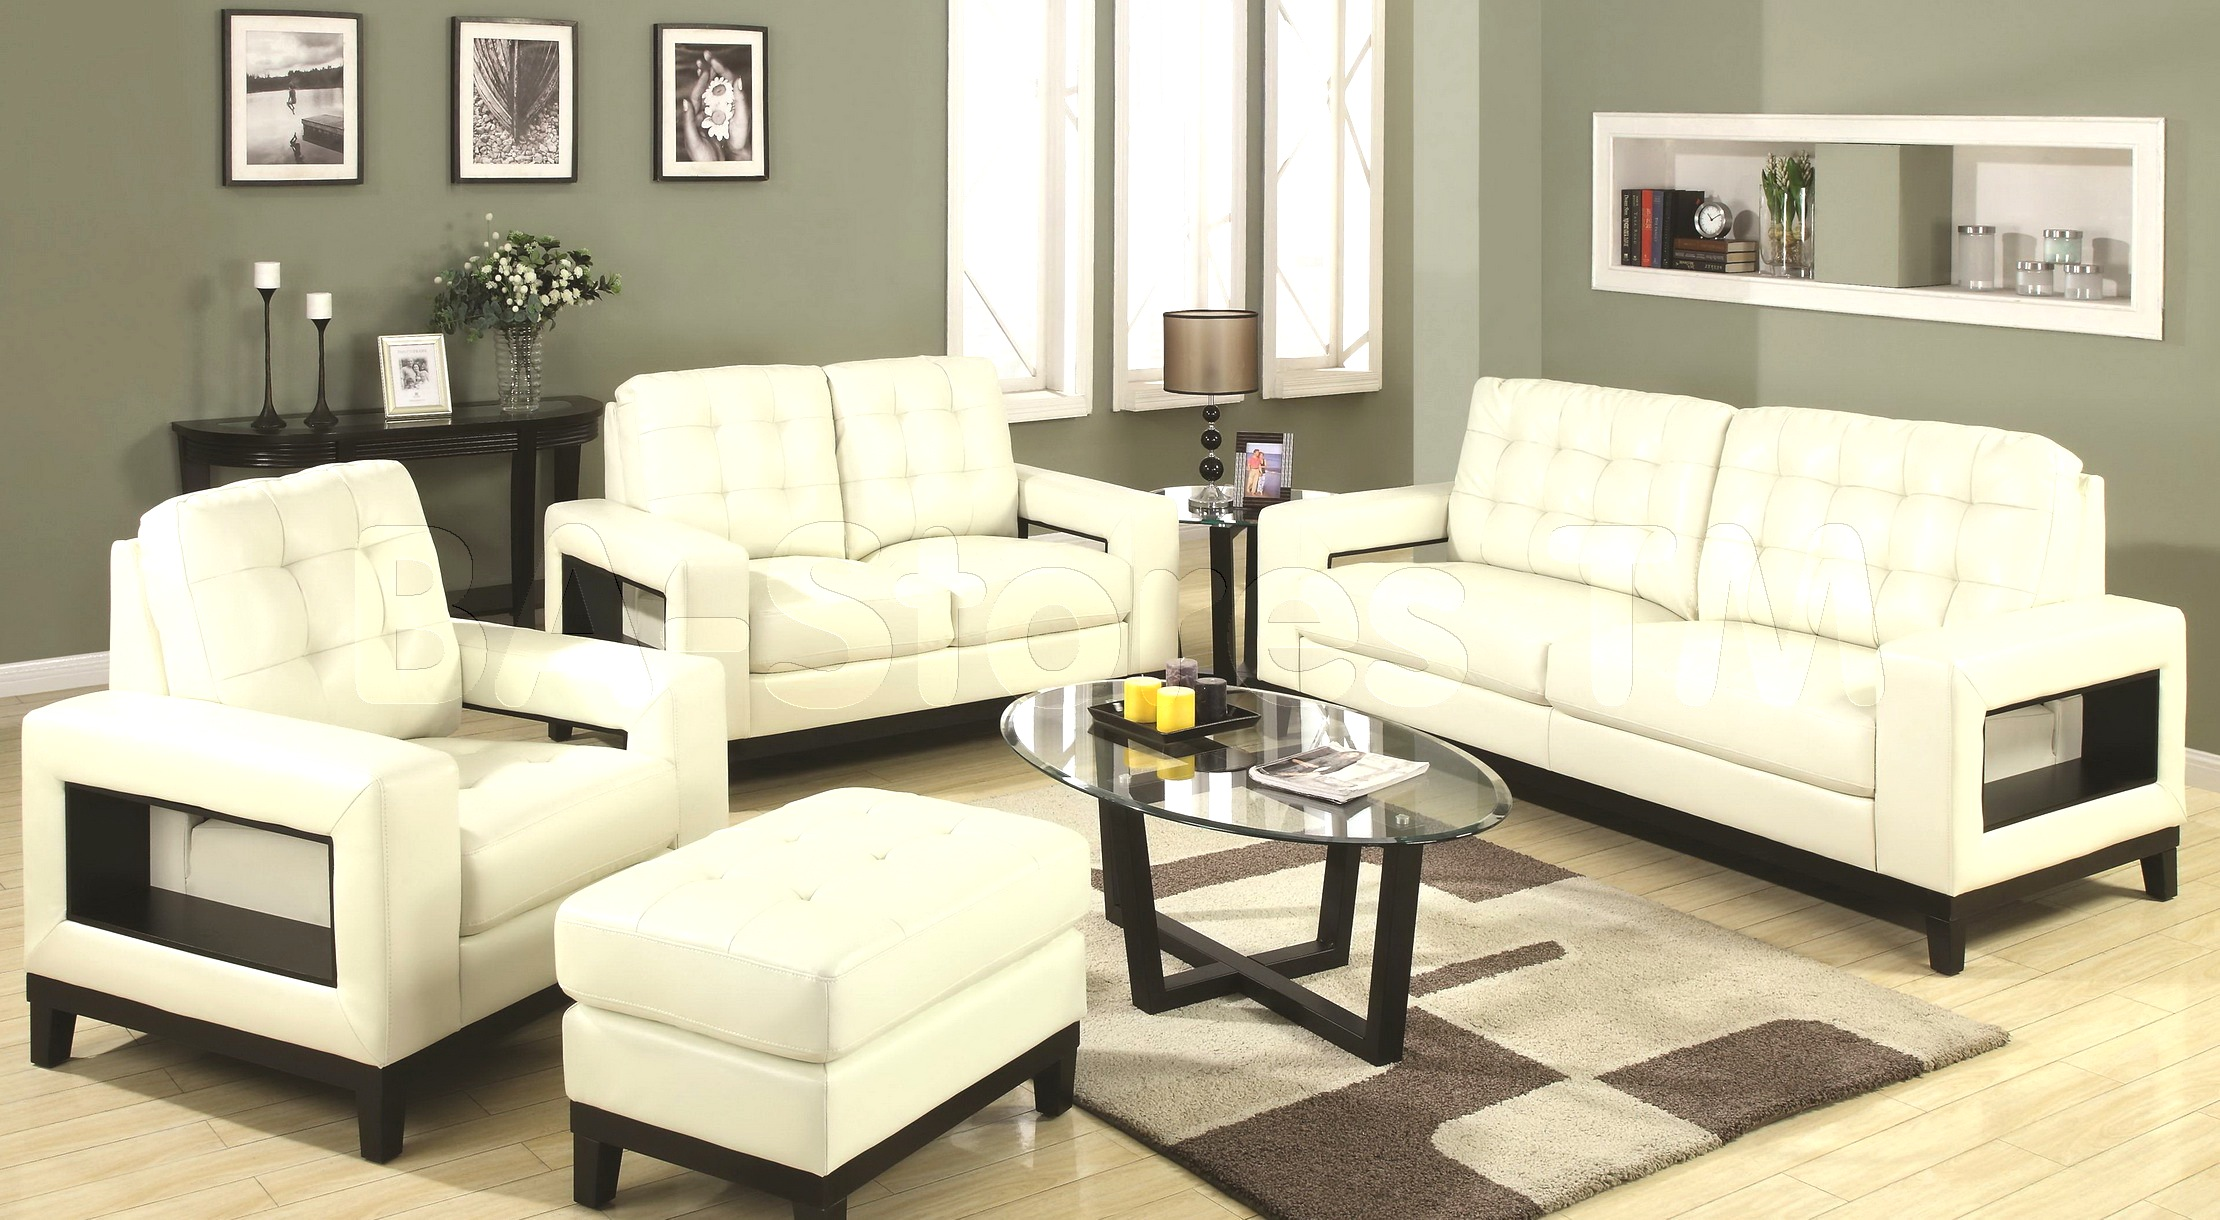 White living room furniture sets roselawnlutheran for New living room furniture